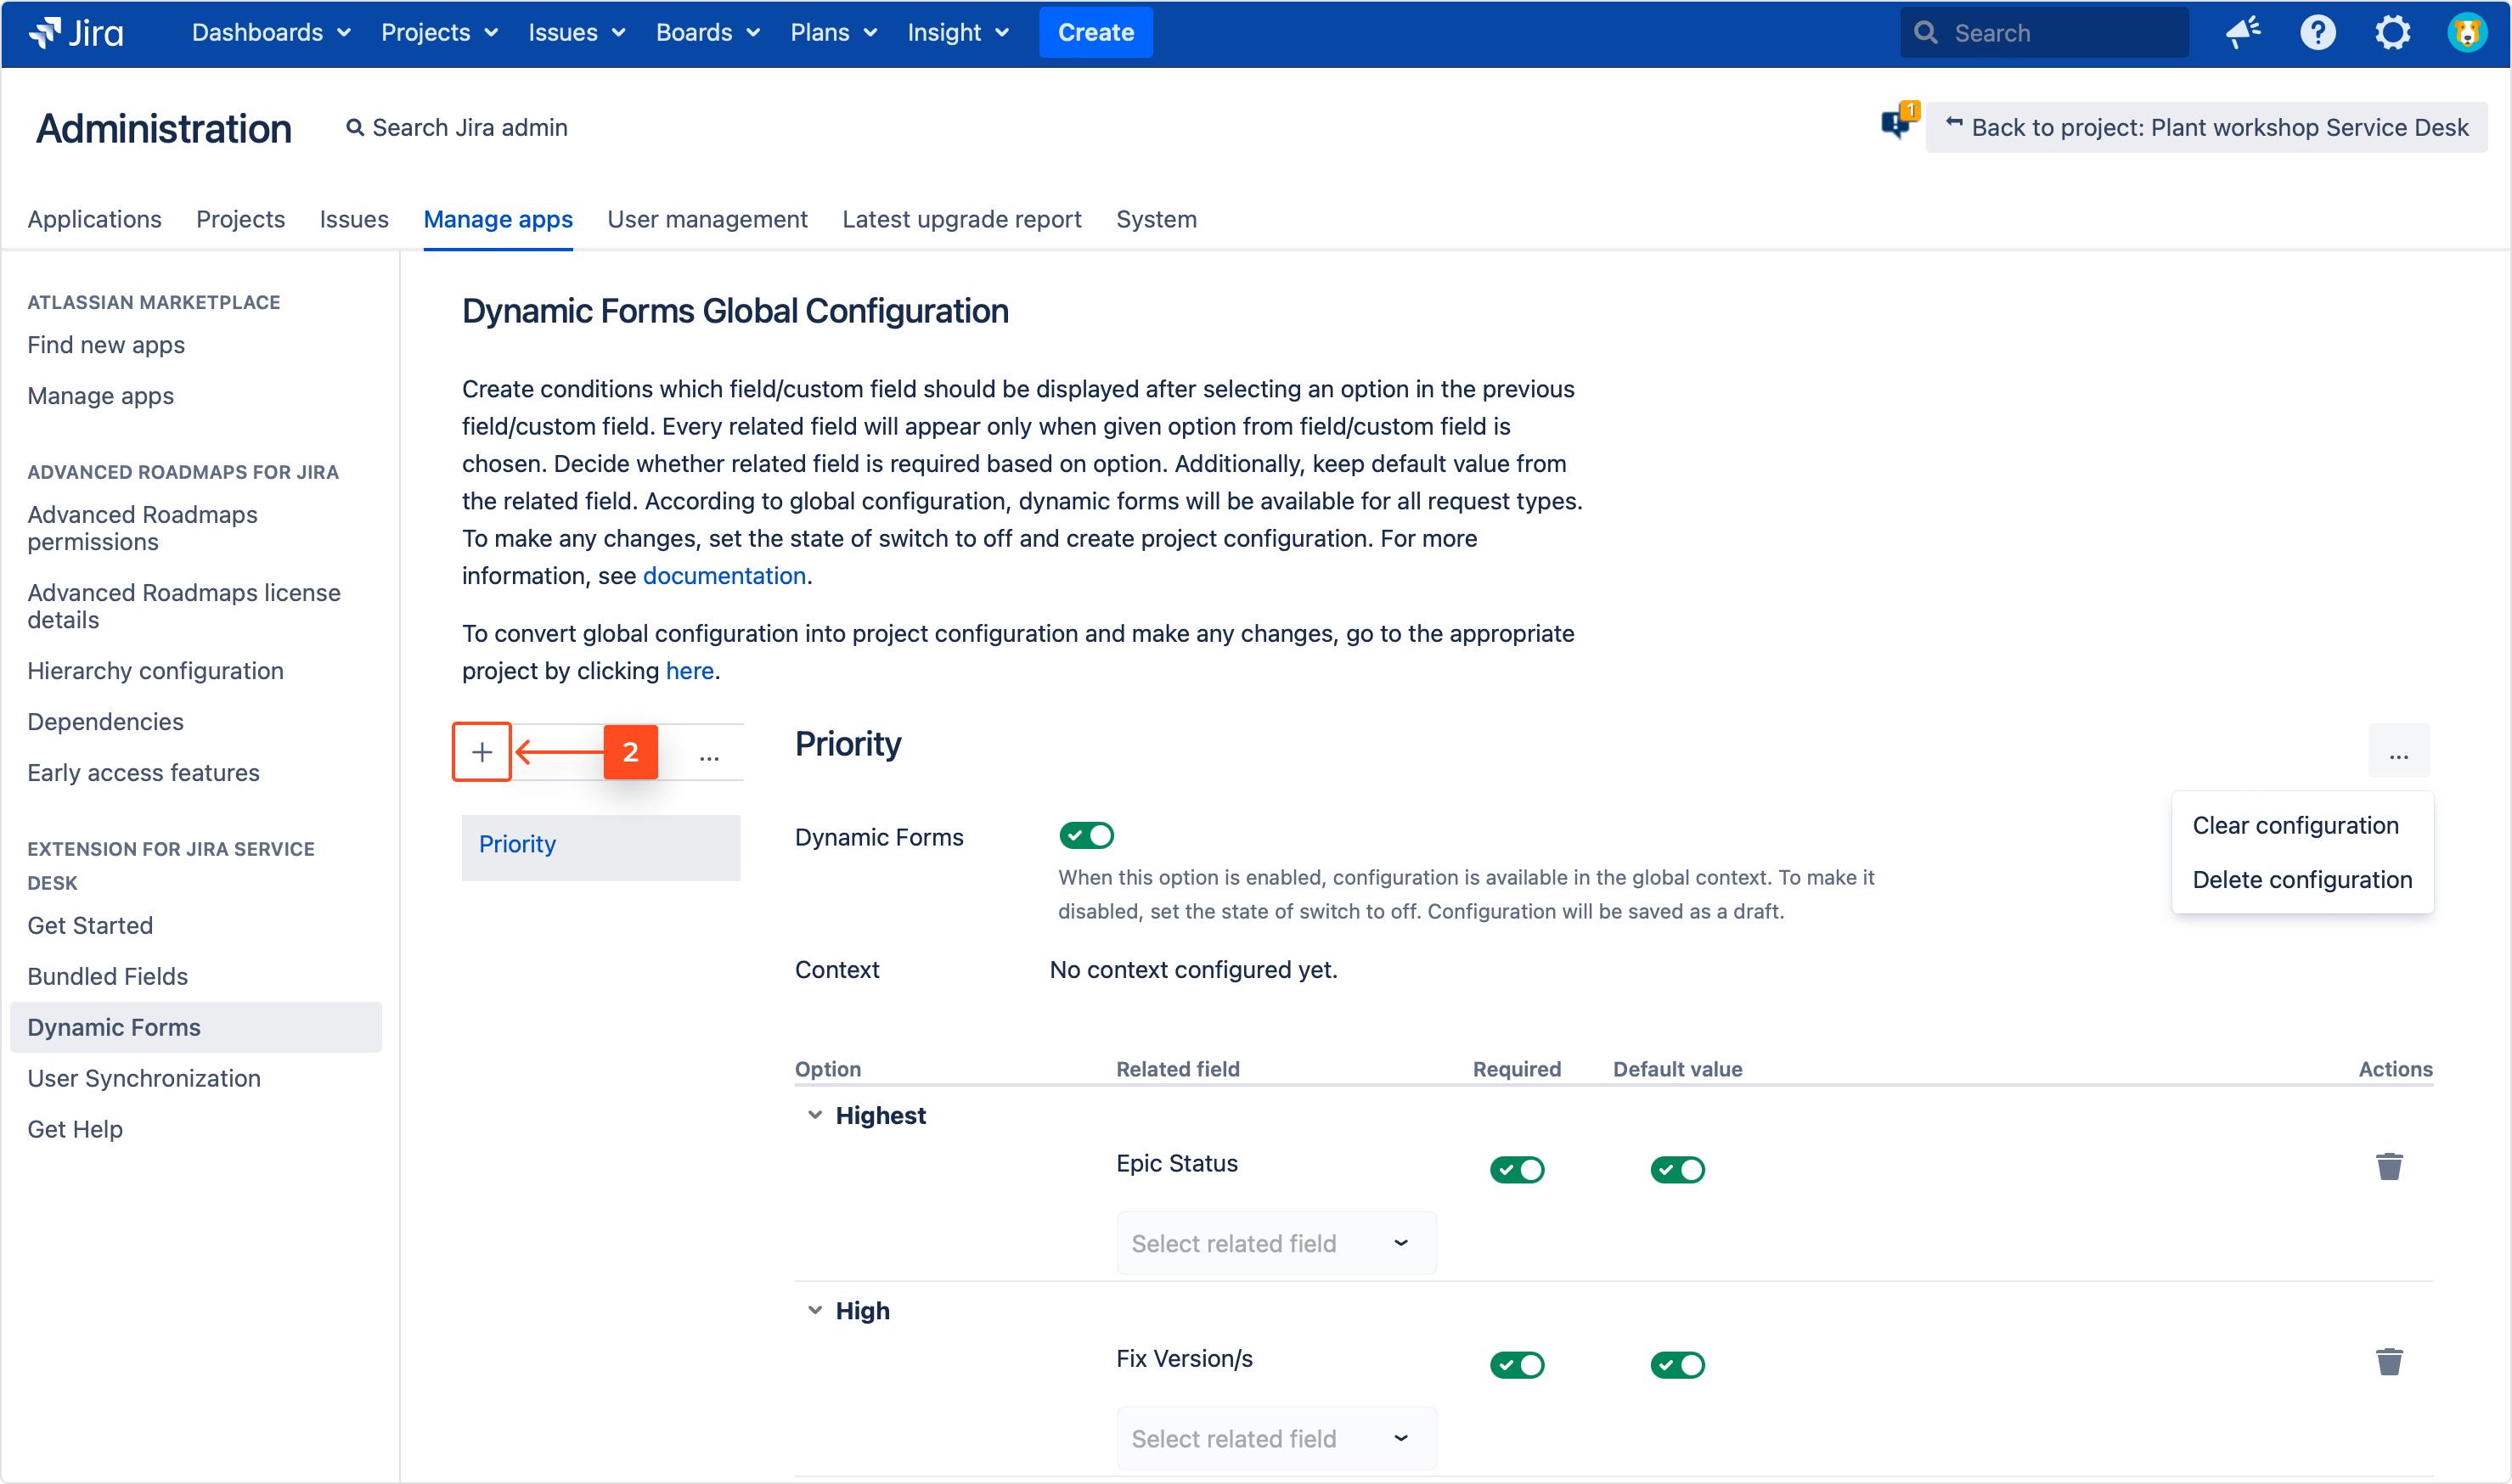 Adding a new Dynamic Forms Global Configuration with Extension for Jira Service Management